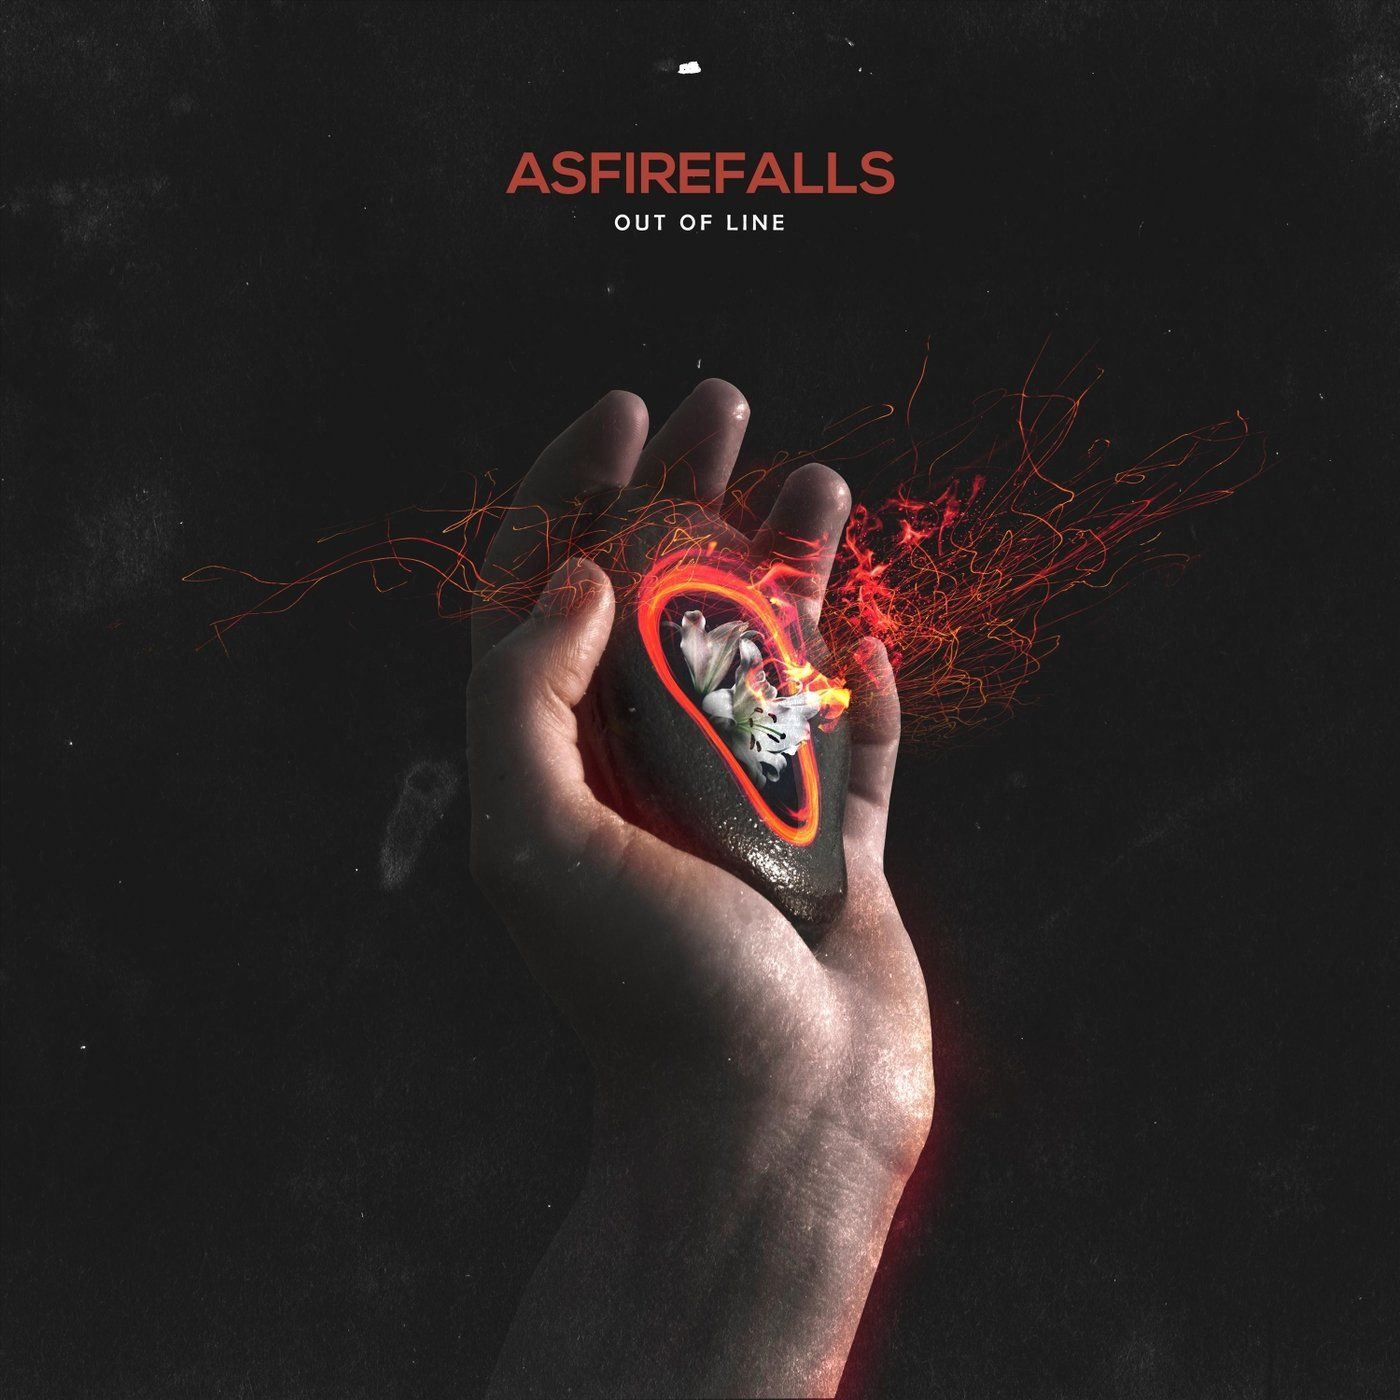 Asfirefalls - Out of Line [single] (2020)